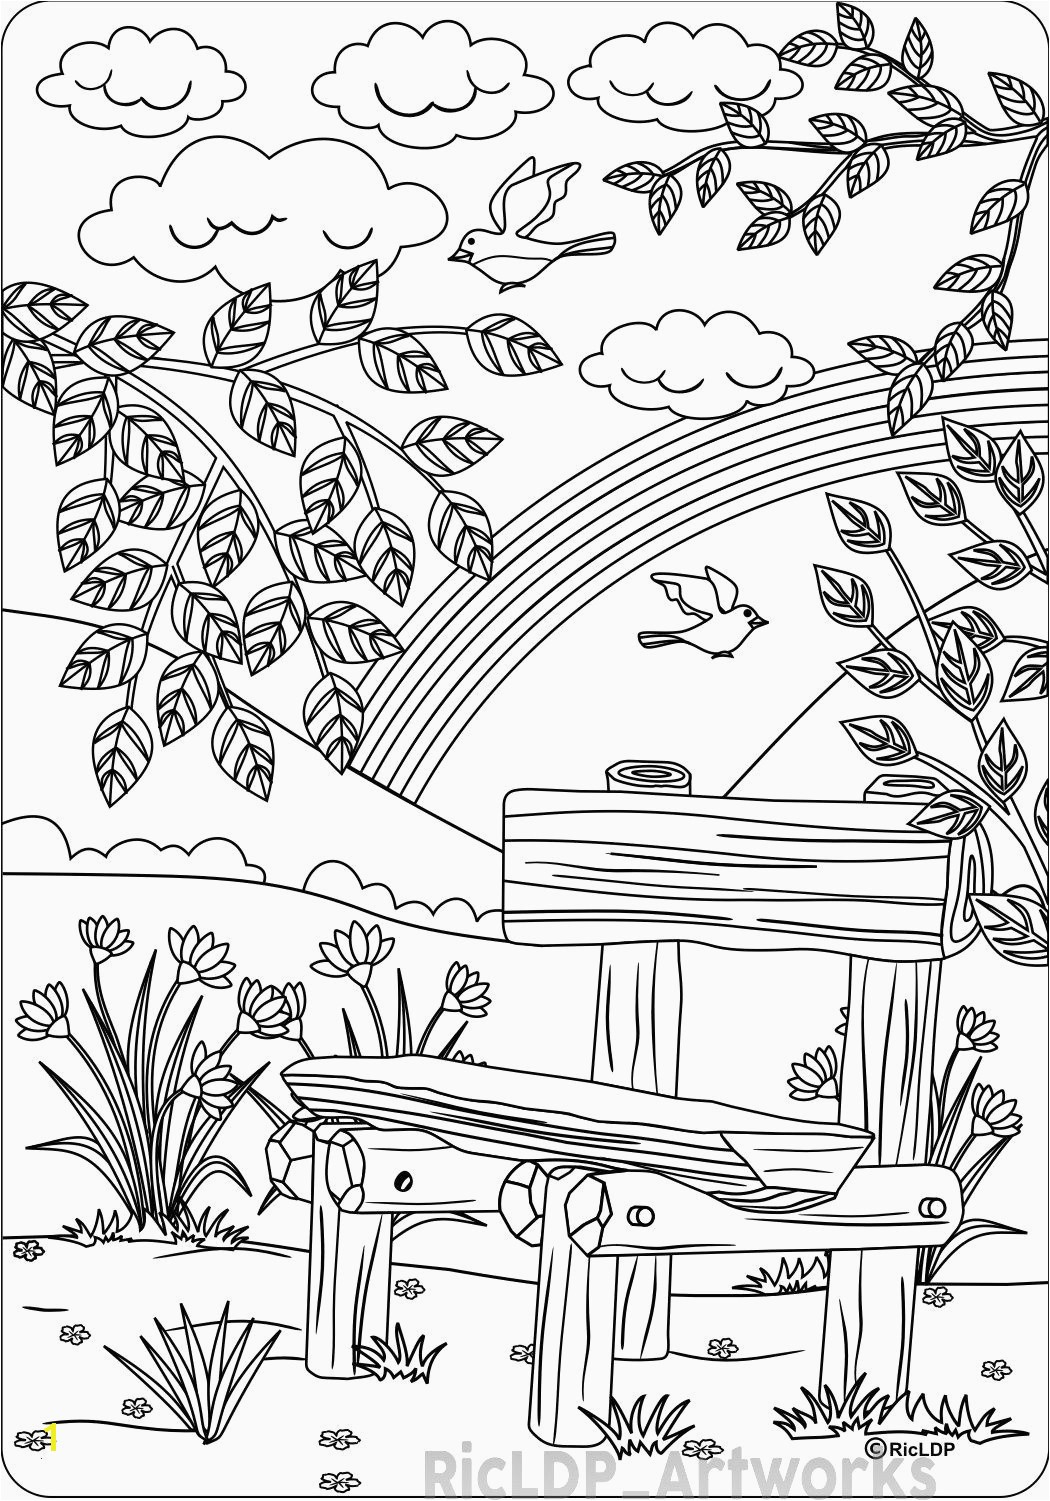 14 Inspirational Birthday themed Coloring Pages Image